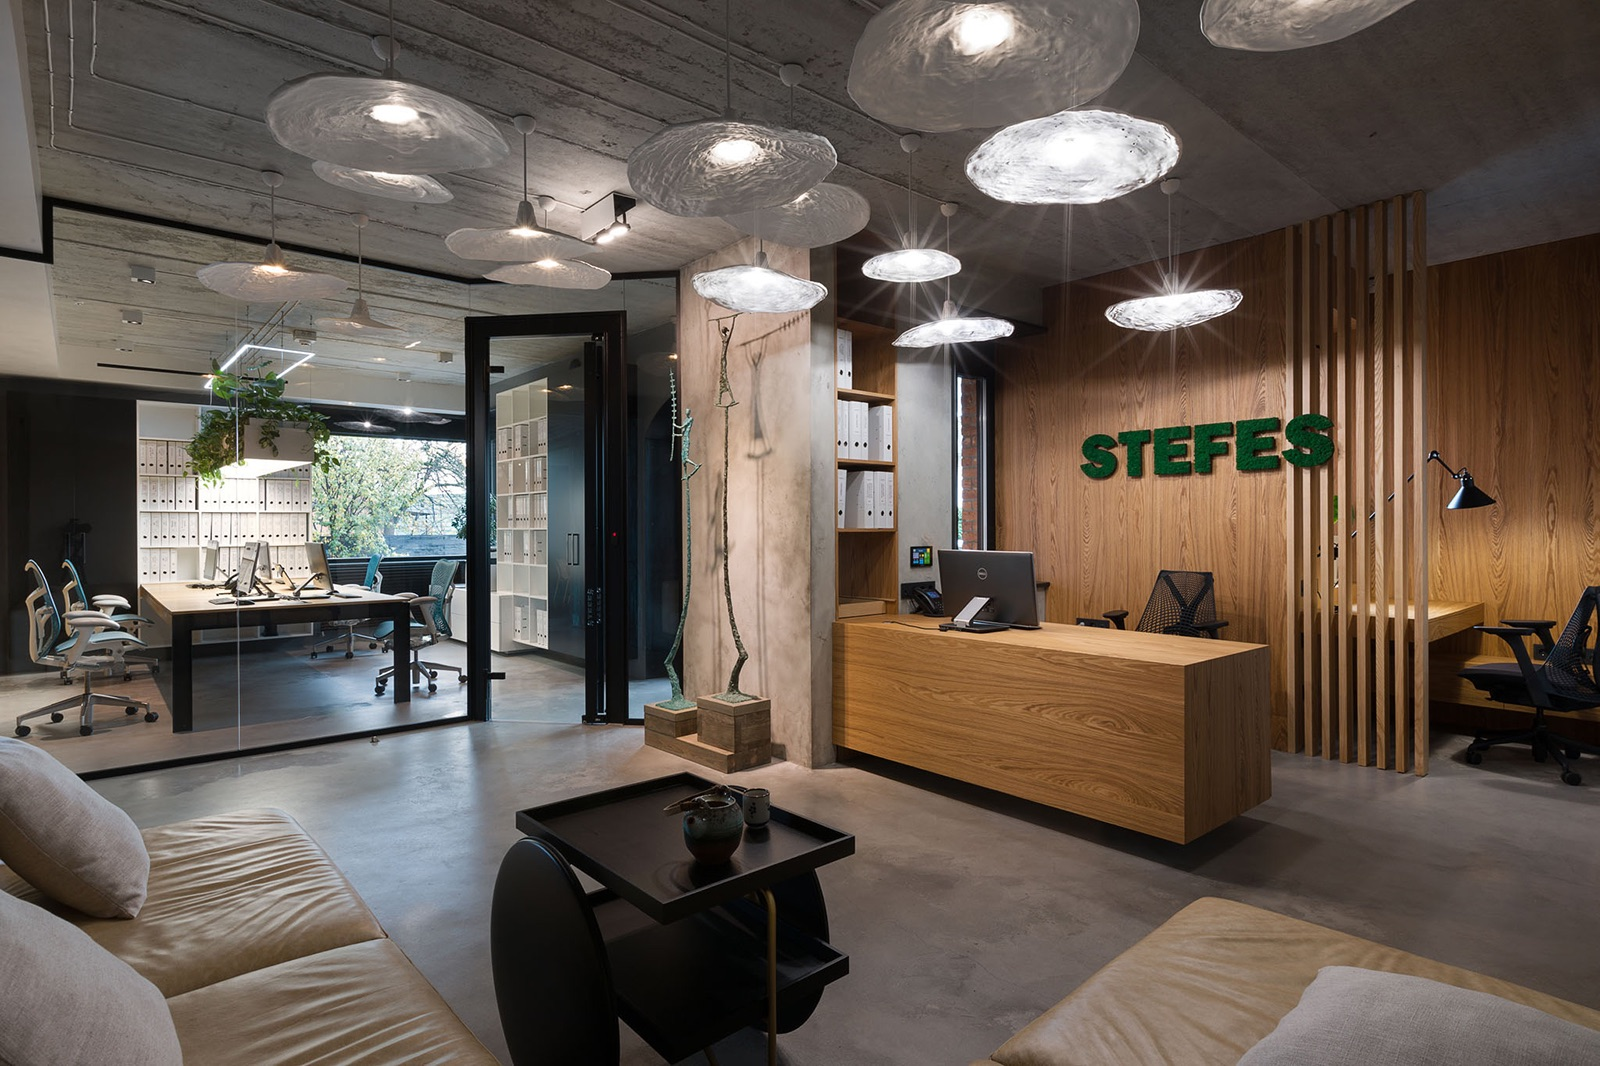 stefes-office-4